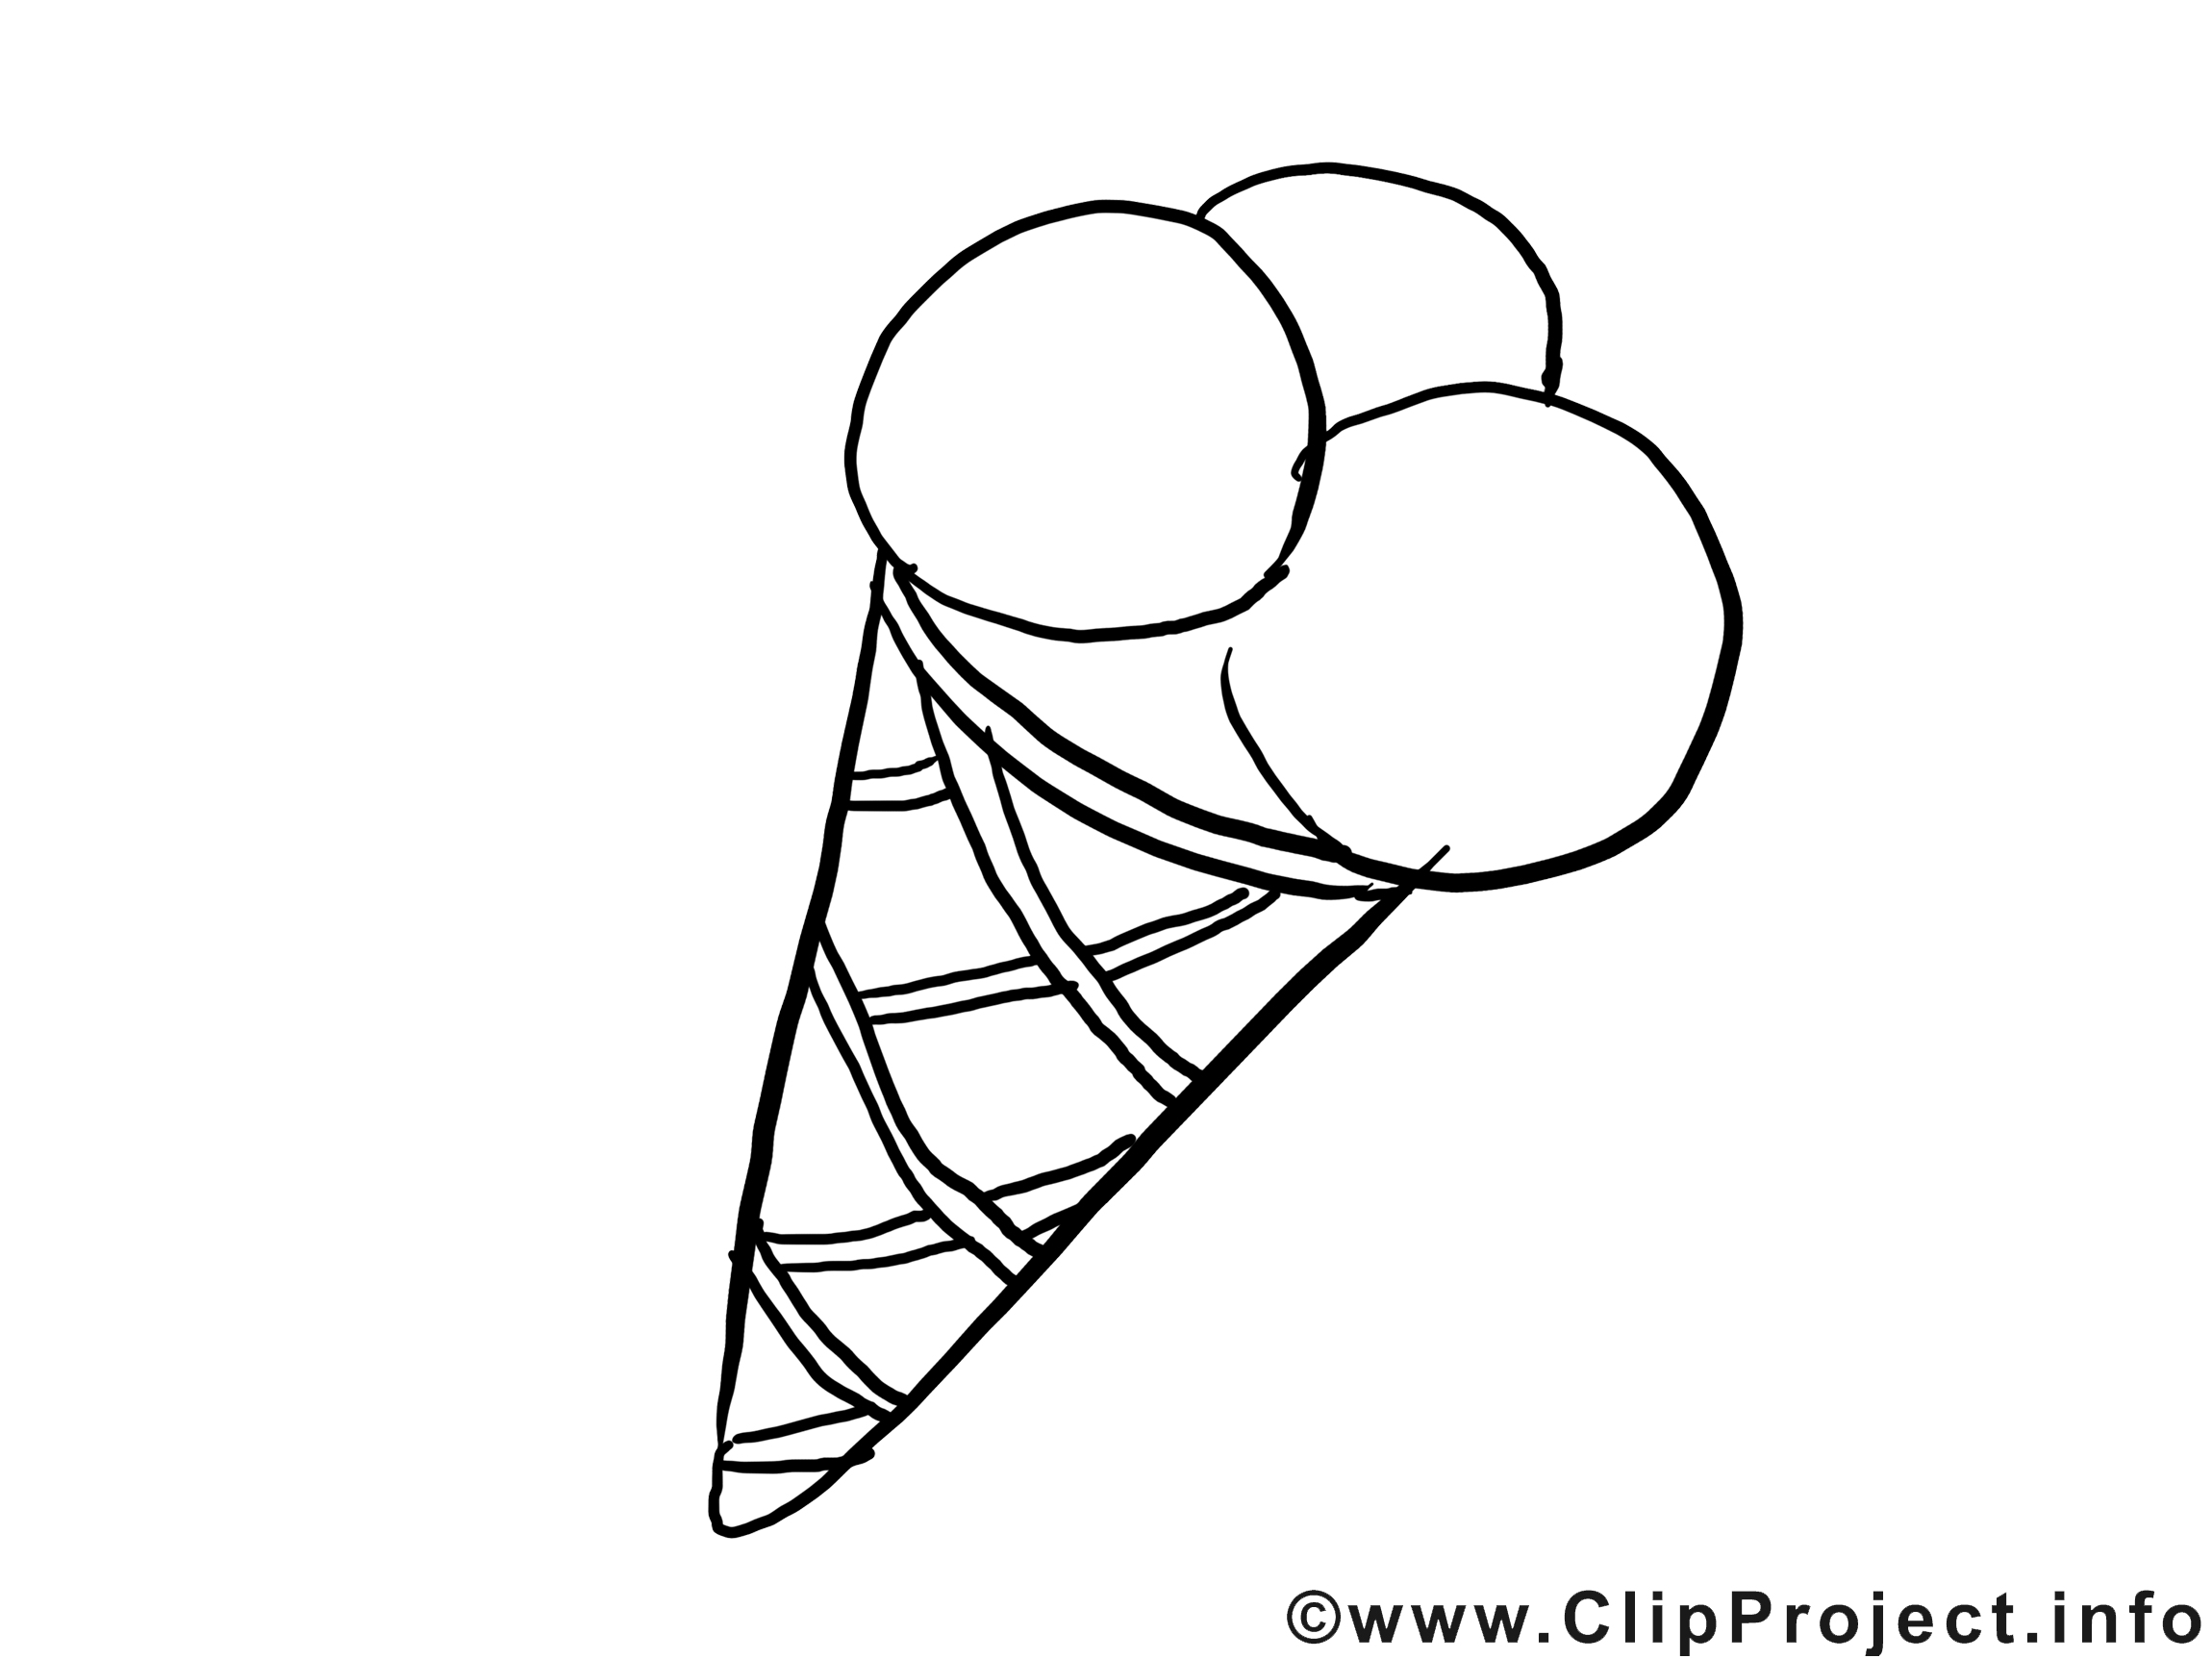 Png Eis Essen Transparent Eis Essen Png Images Pluspng